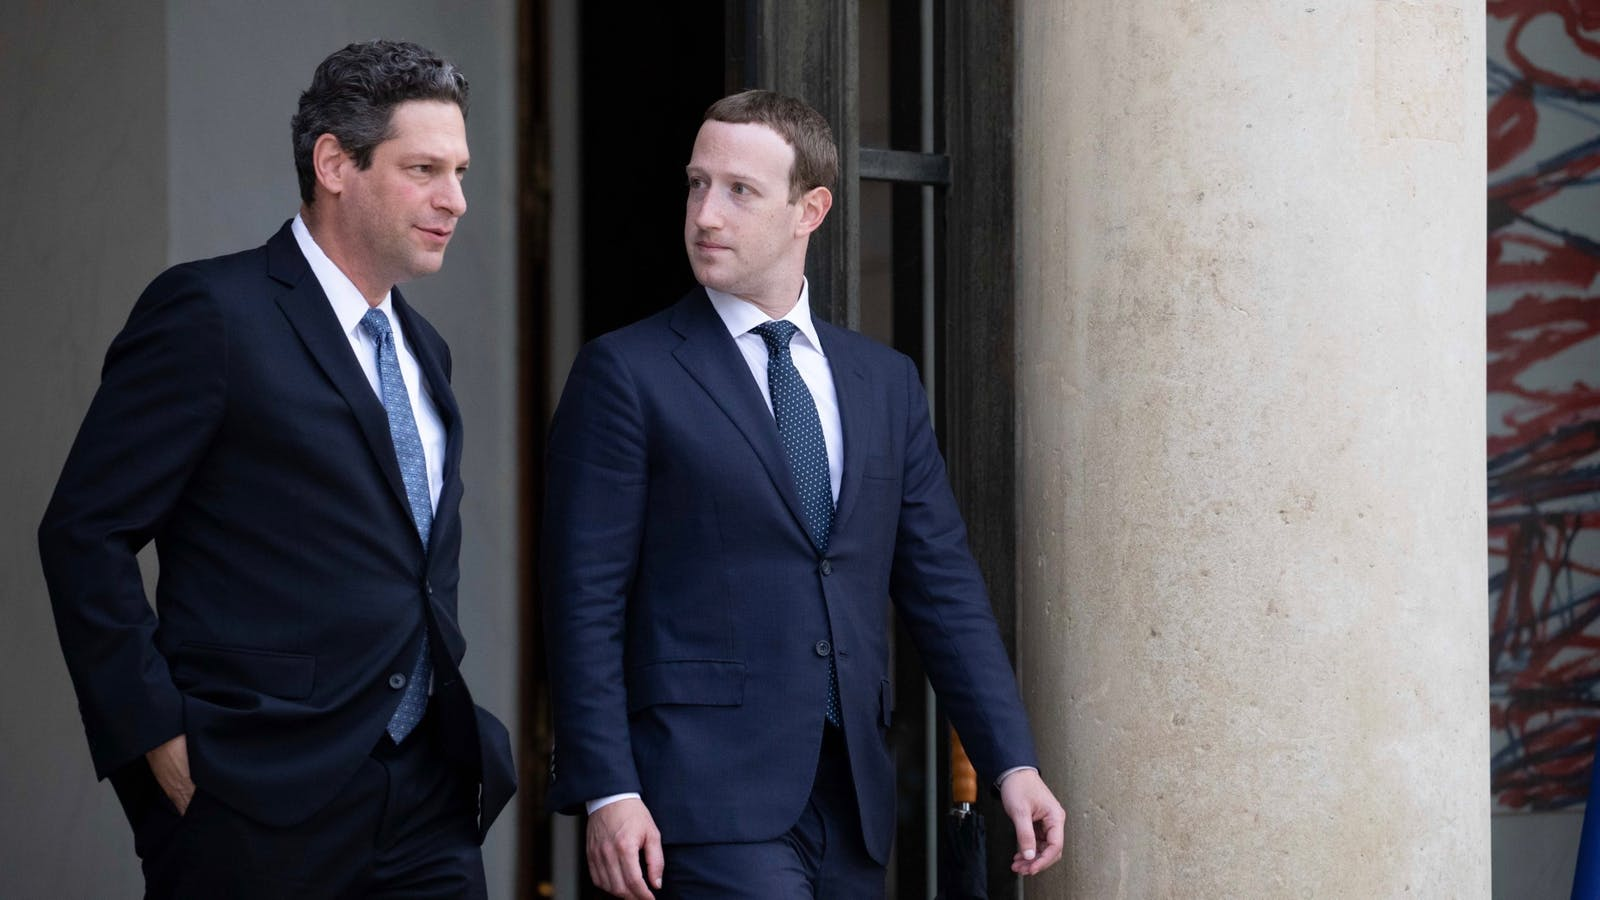 Facebook policy chief Joel Kaplan and CEO Mark Zuckerberg in 2018. Photo: Bloomberg